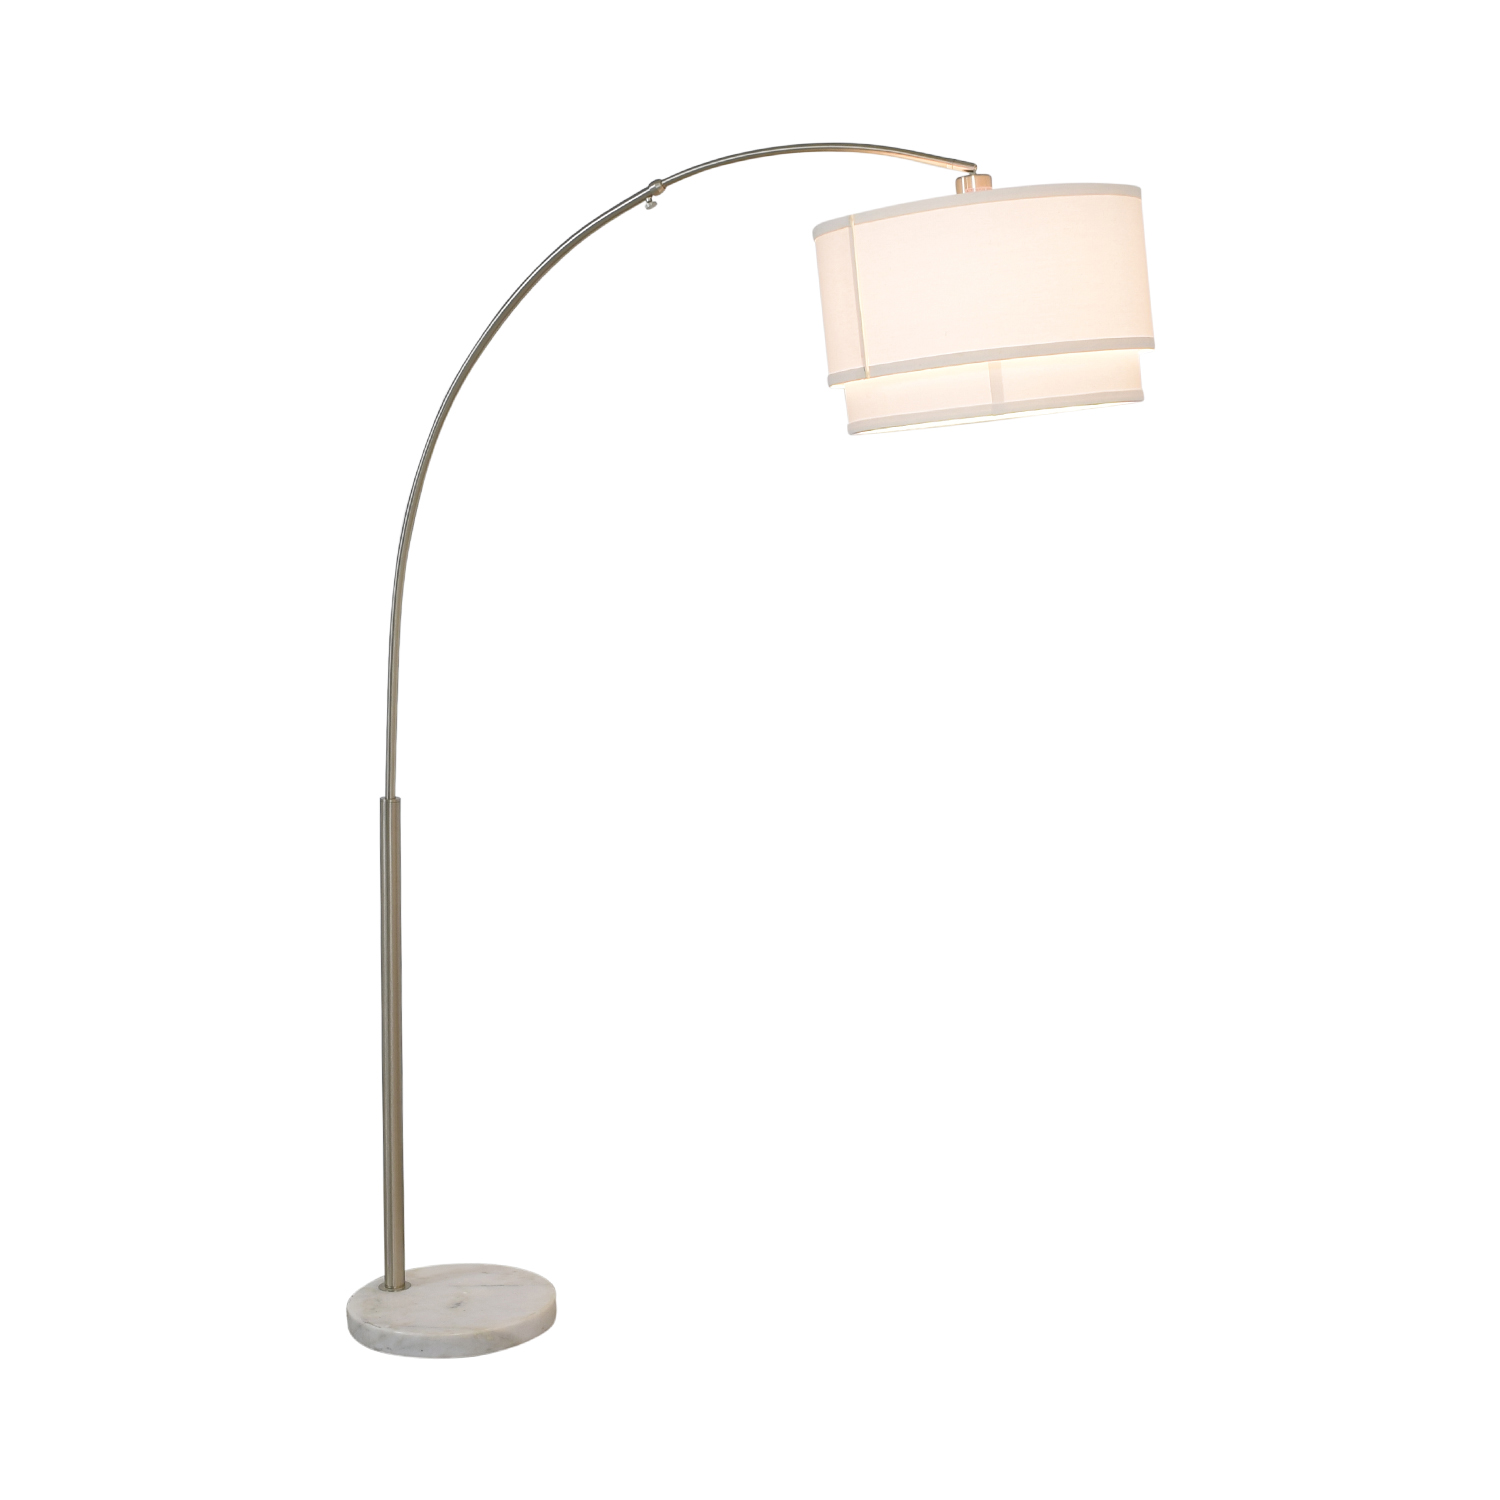 buy Crate & Barrel Meryl Arc Floor Lamp Crate & Barrel Lamps